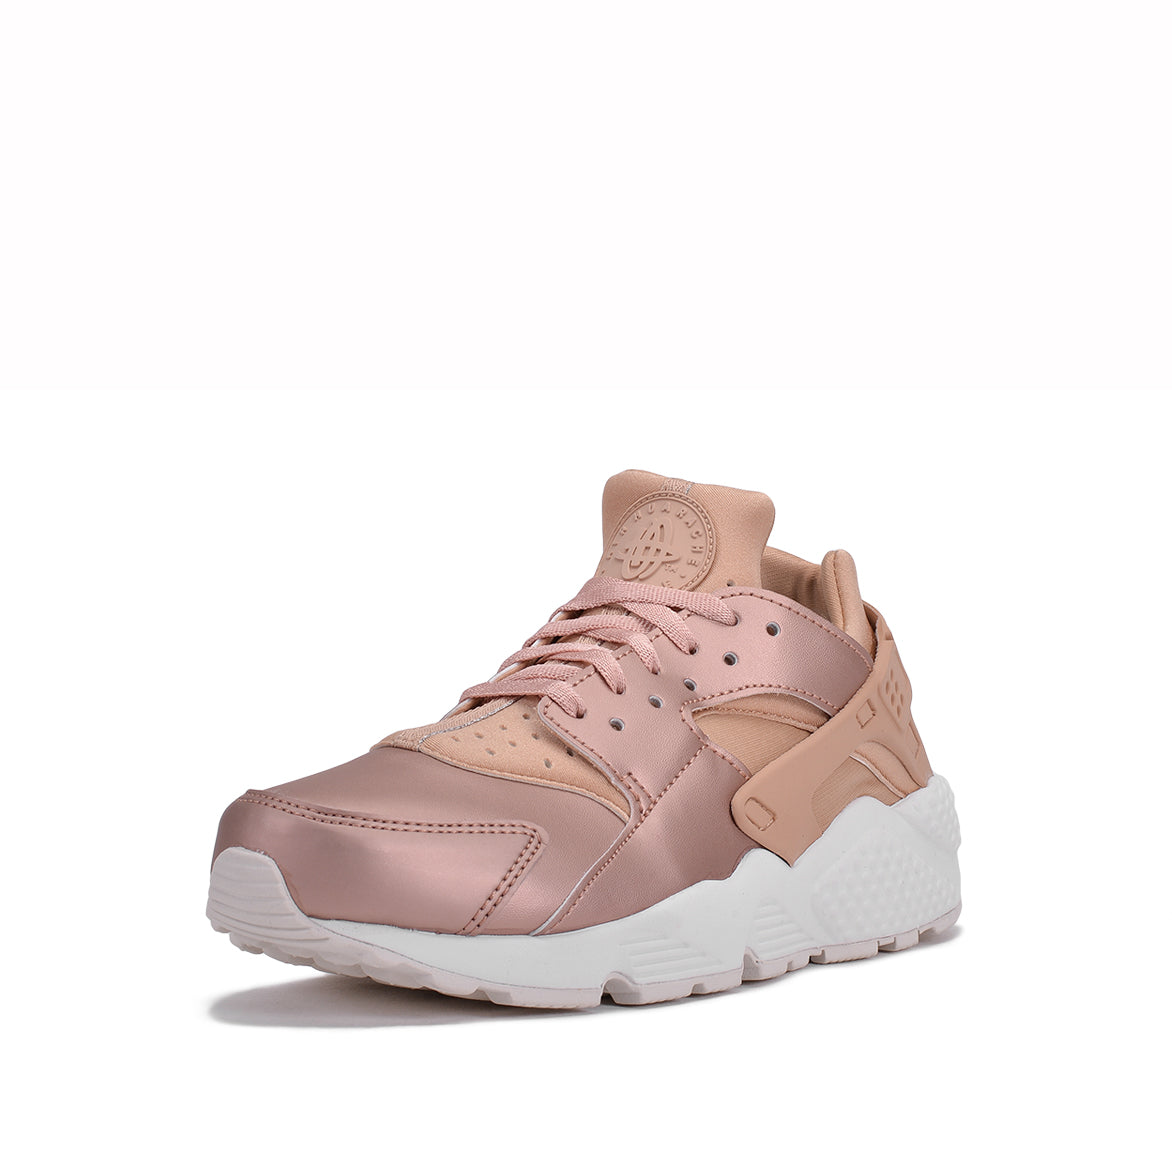 WMNS AIR HUARACHE RUN PRM TXT - METALLIC RED BRONZE